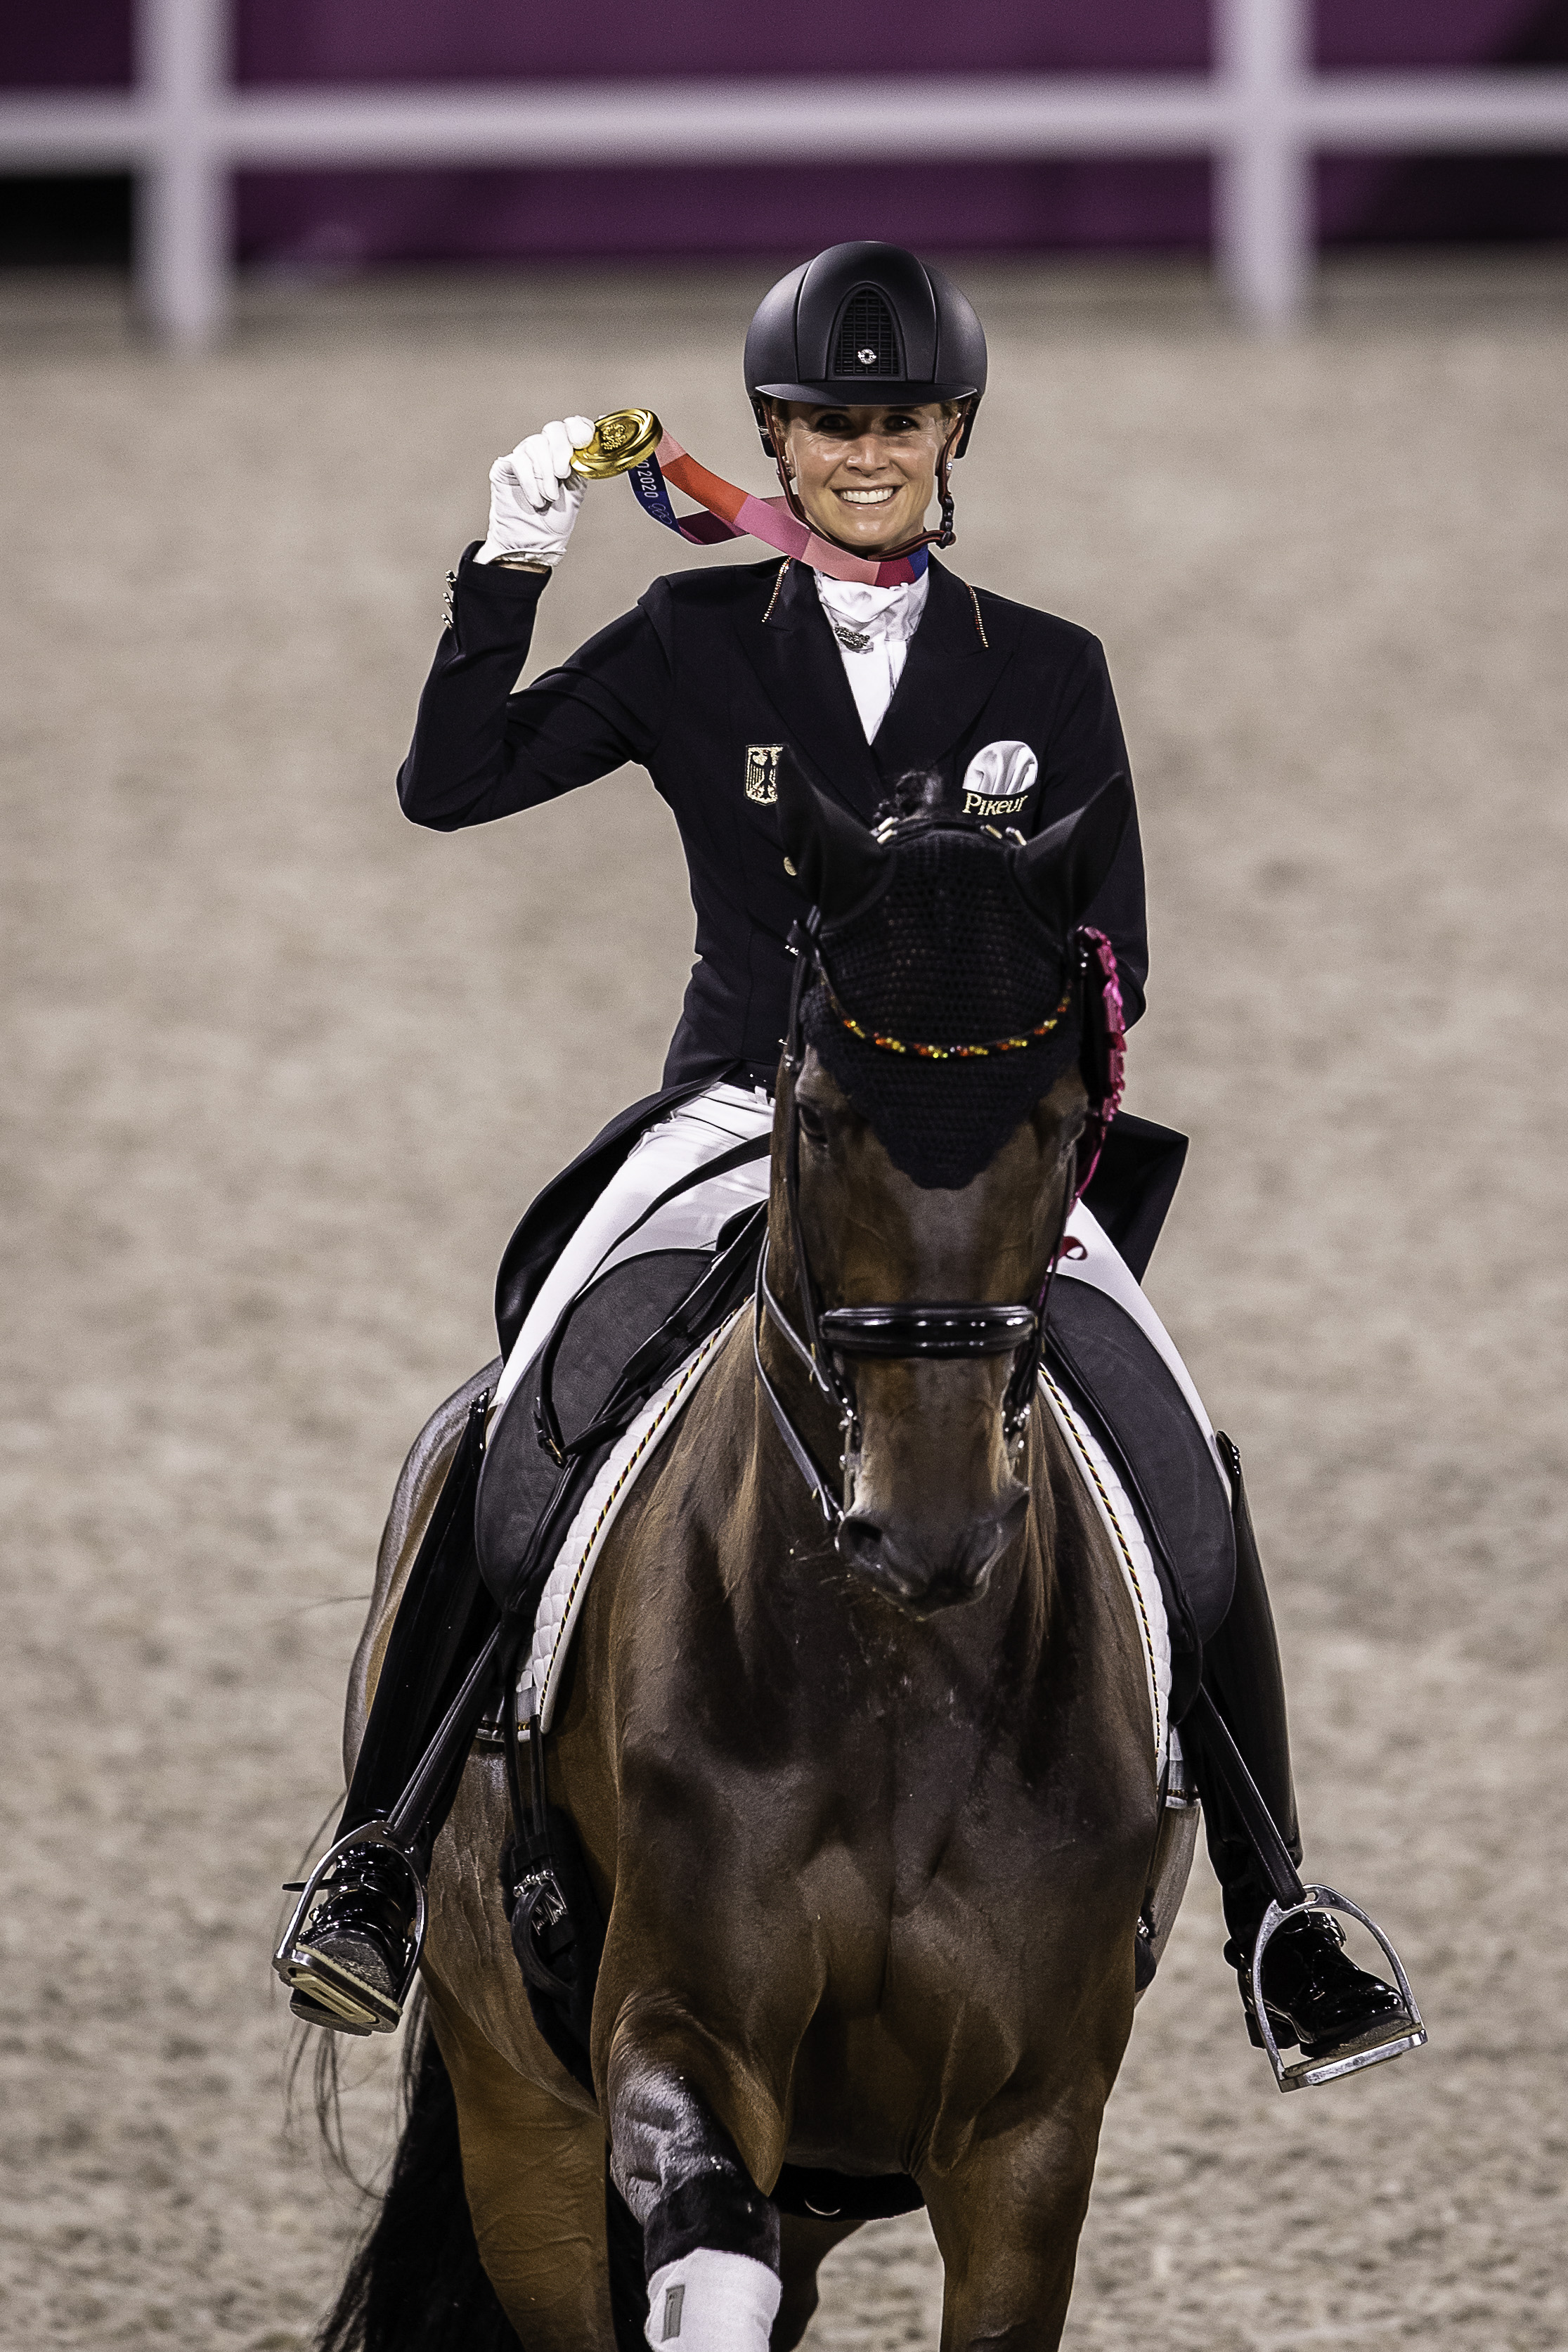 Jessica von Bredow-Werndl to Olympic gold with monster score